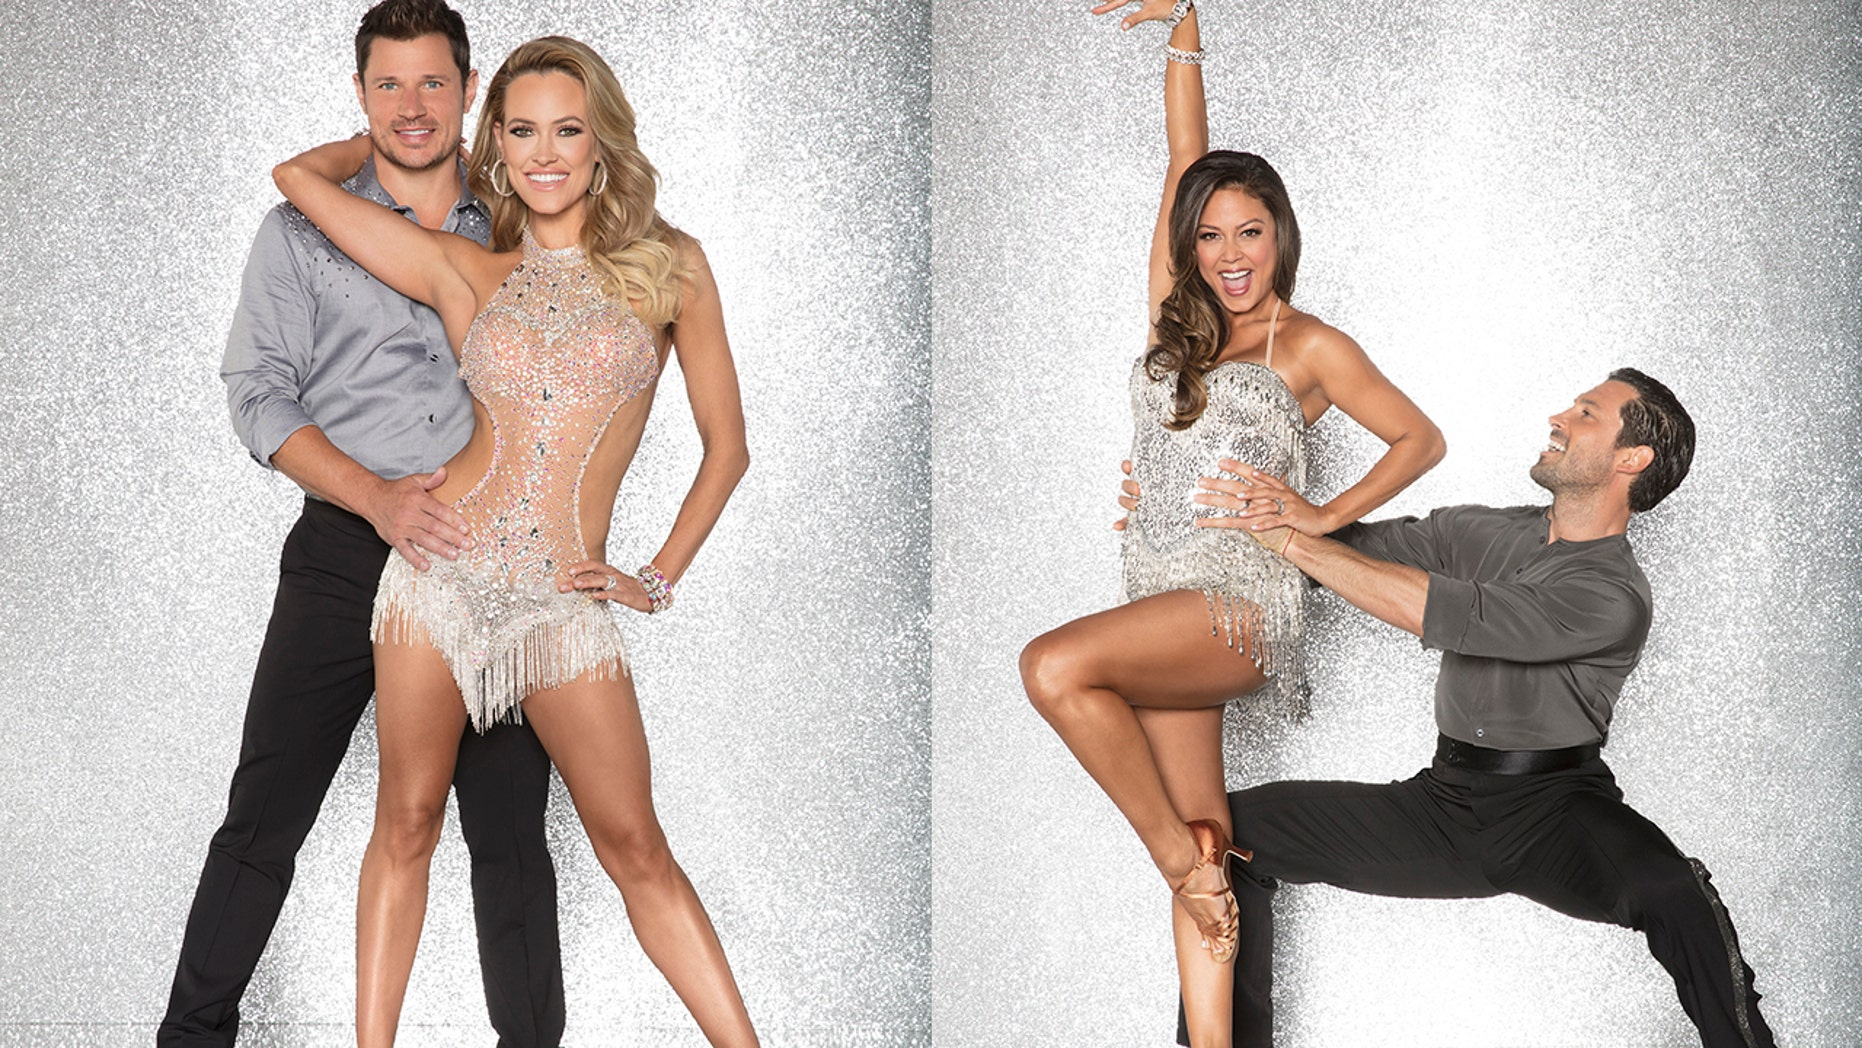 """Nick Lachey (left) and his """"Dancing With the Stars"""" partner Peta Murgatroyd. Vanessa Lachey (middle right) and her partner Maksim Chmerkovskiy."""